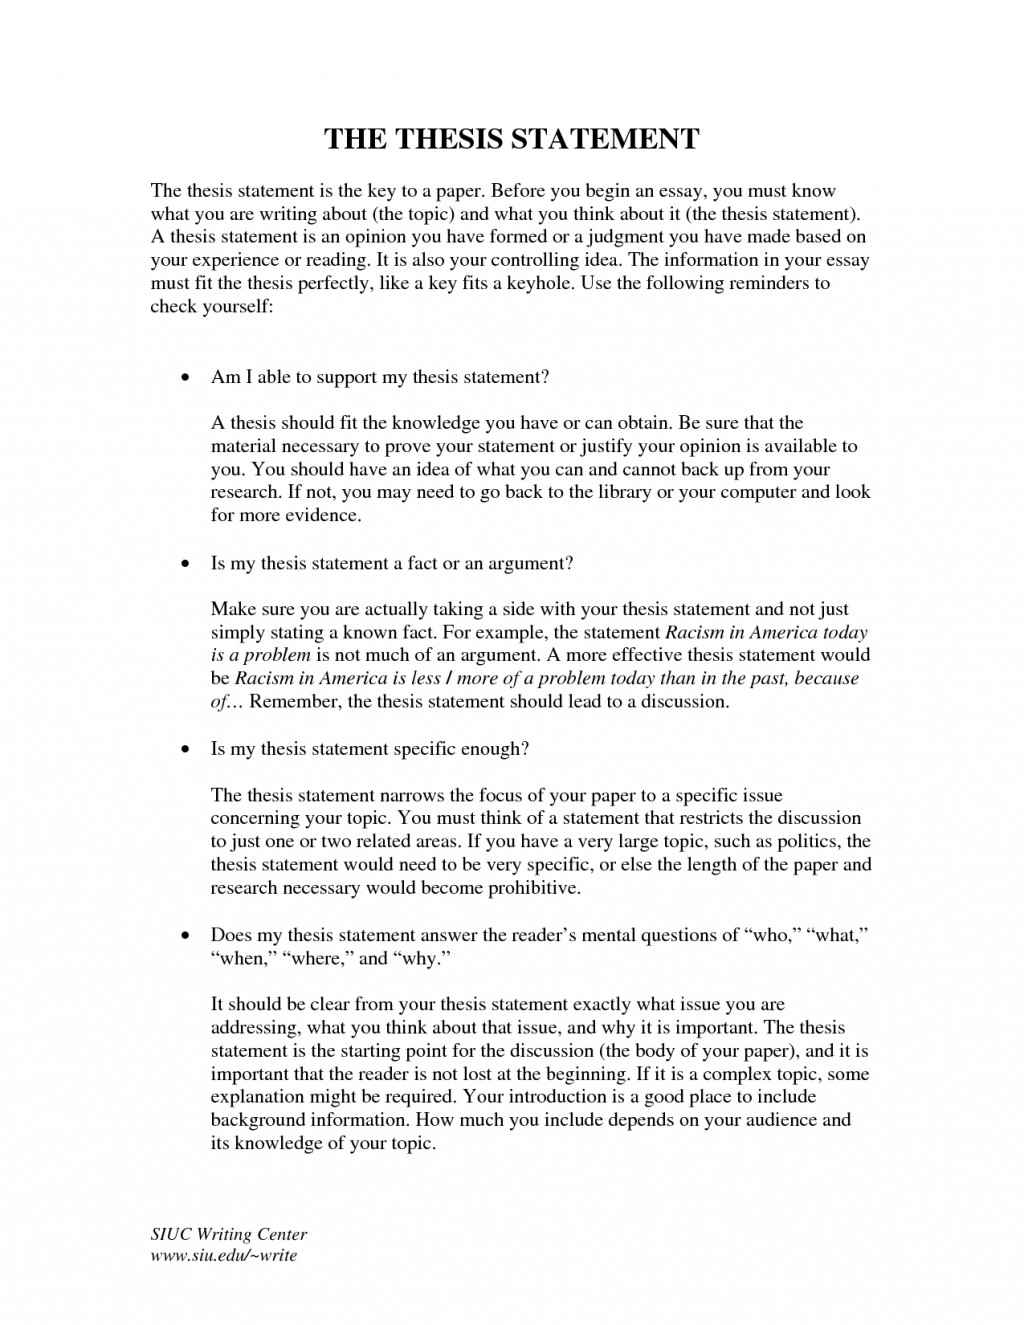 004 Research Paper How To Make Problem Statement In Stirring A Create For Large